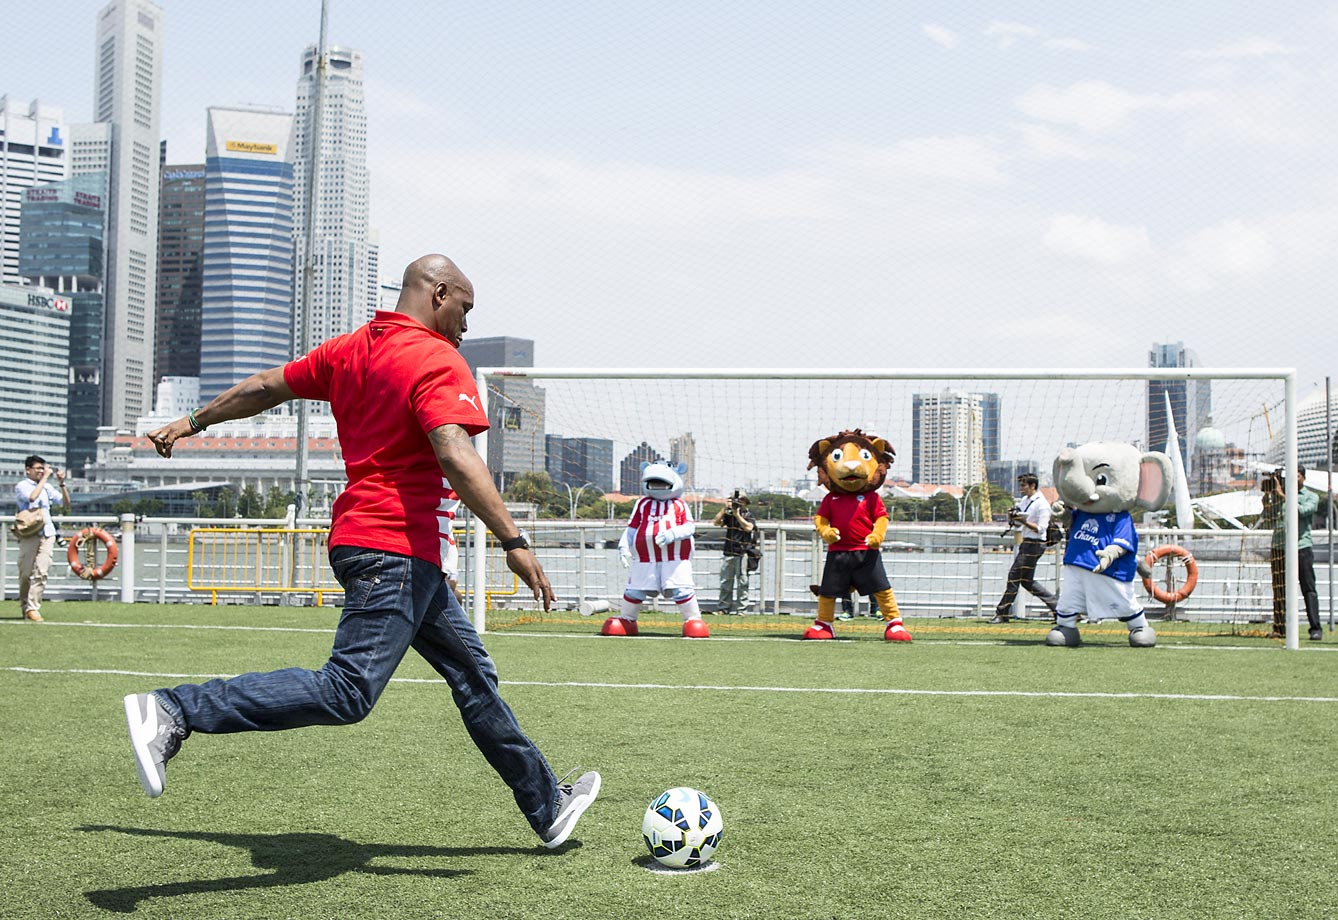 Ian Wright, former Arsenal player, takes a penalty kick against the football mascots of Everton, Stoke and Singapore during the Ticket Launch for the Barclay's Asia Trophy 2015 in Singapore.